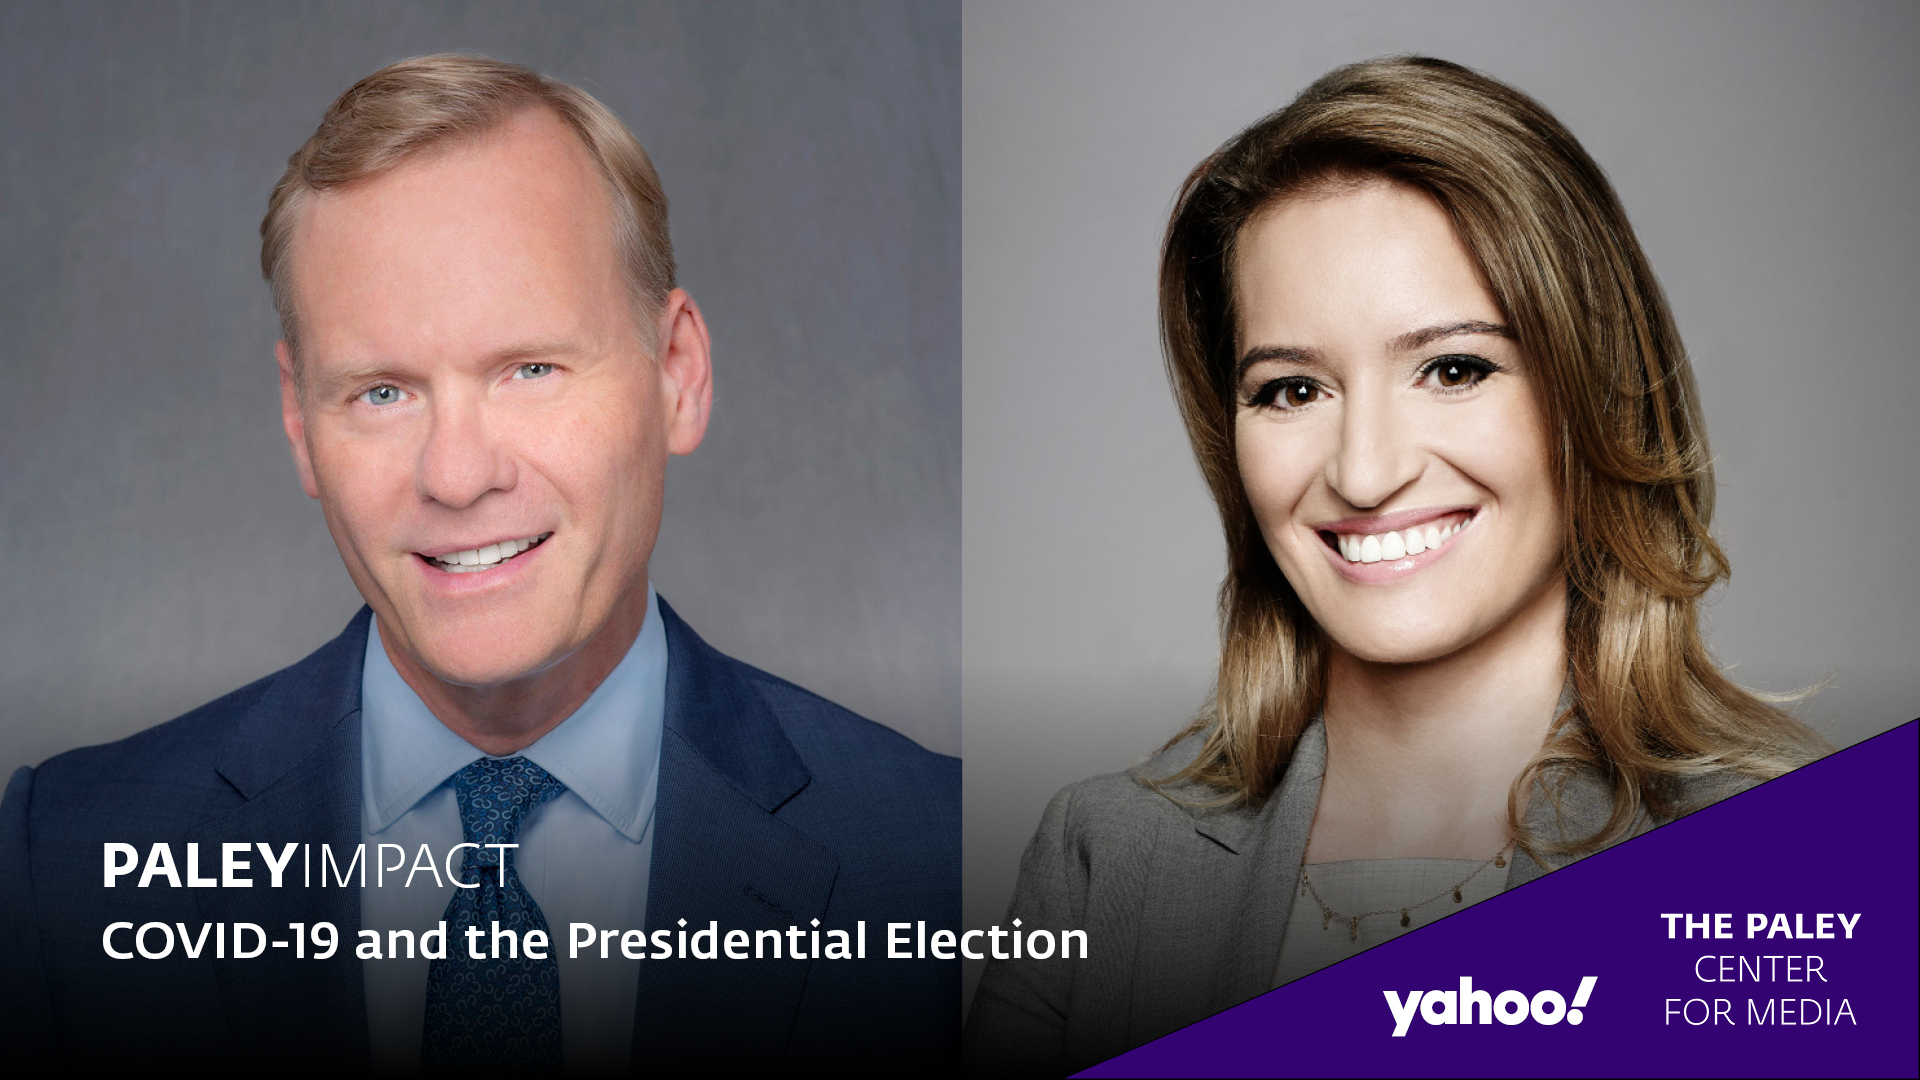 PaleyIMPACT: COVID-19 and the Presidential Election